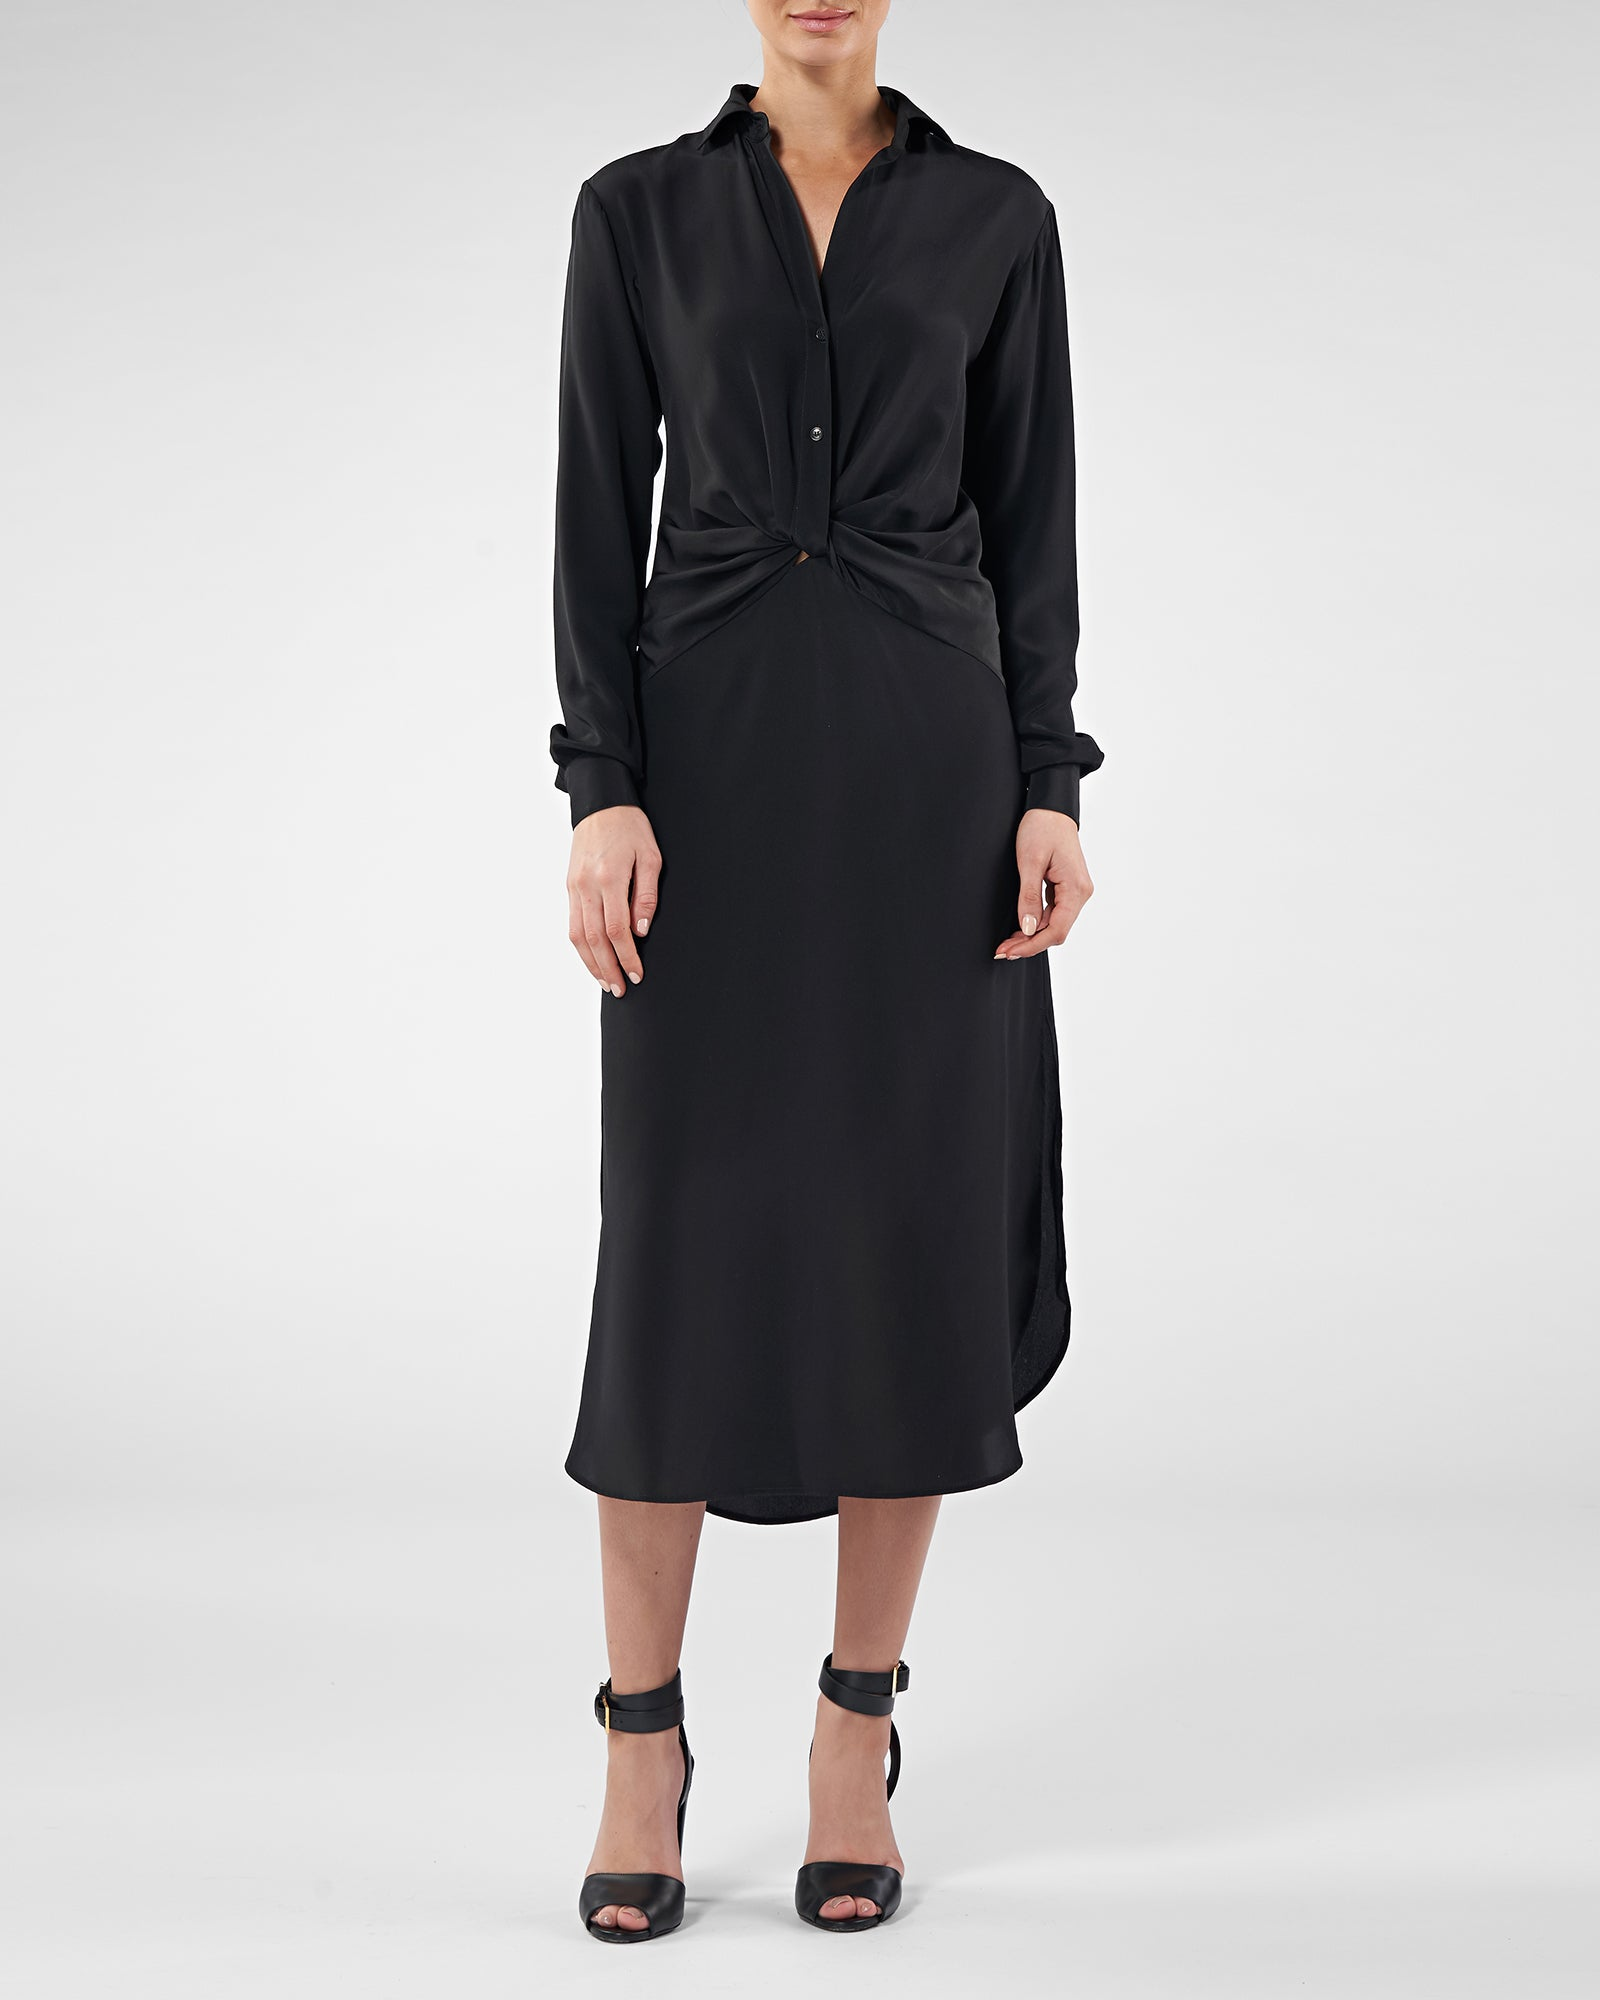 Maeve Silk Shirt Dress